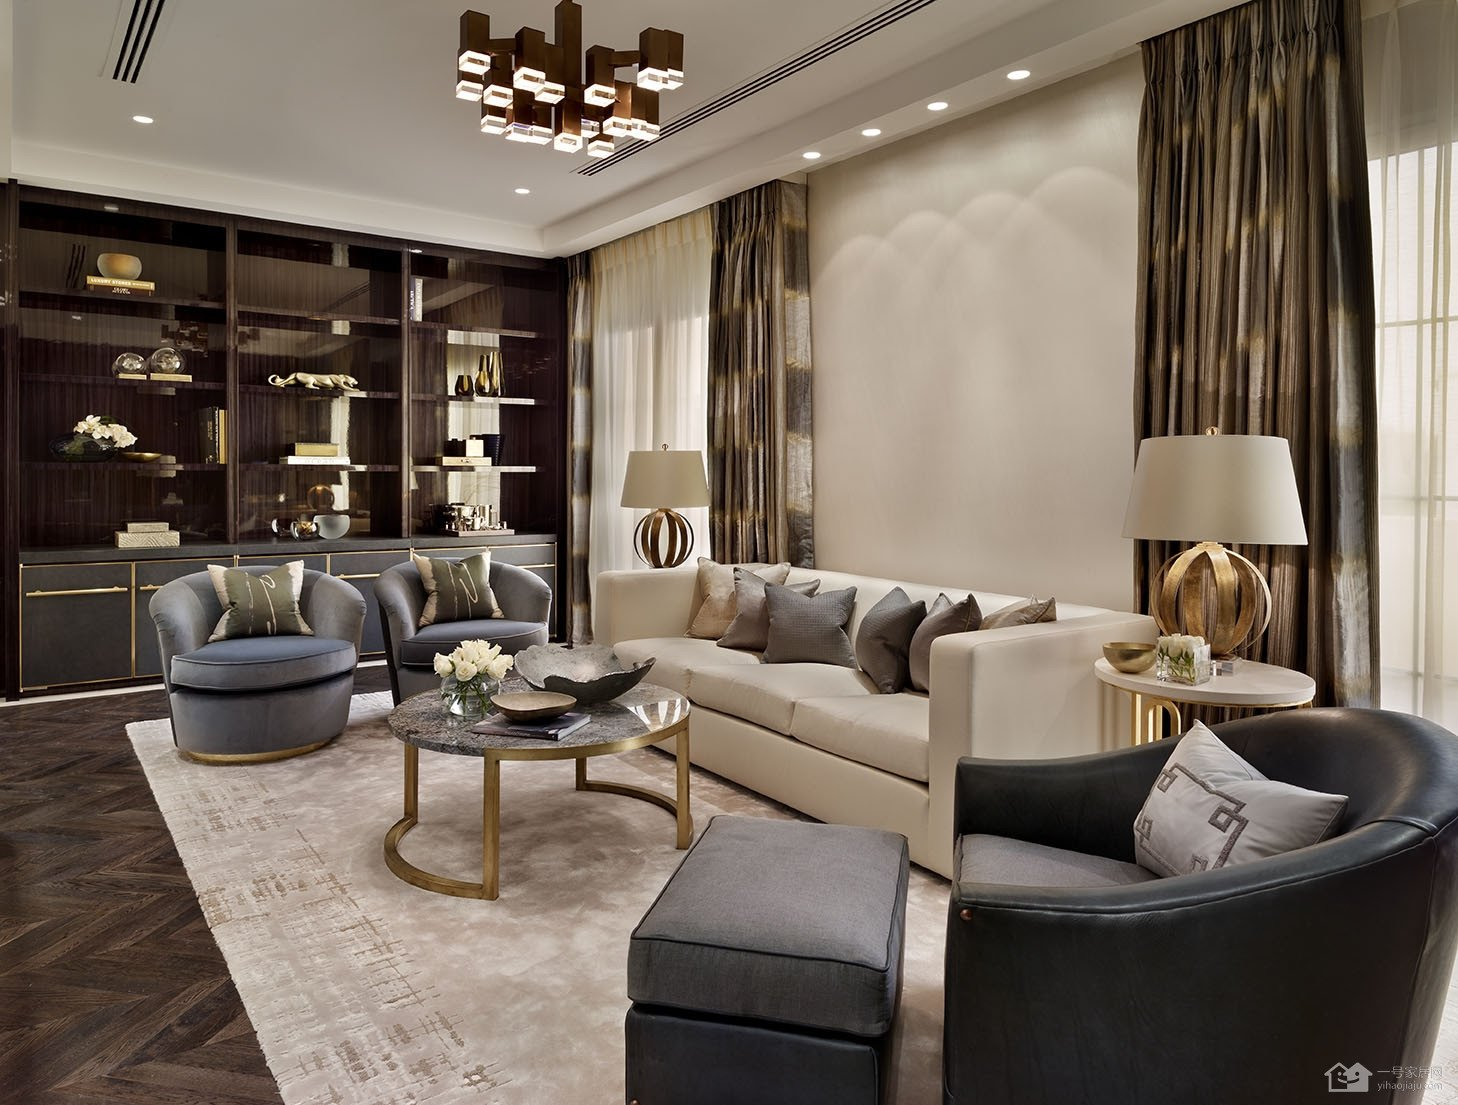 Classic Contemporary Living Room Inspirational July 16 2018 by Mariana 0